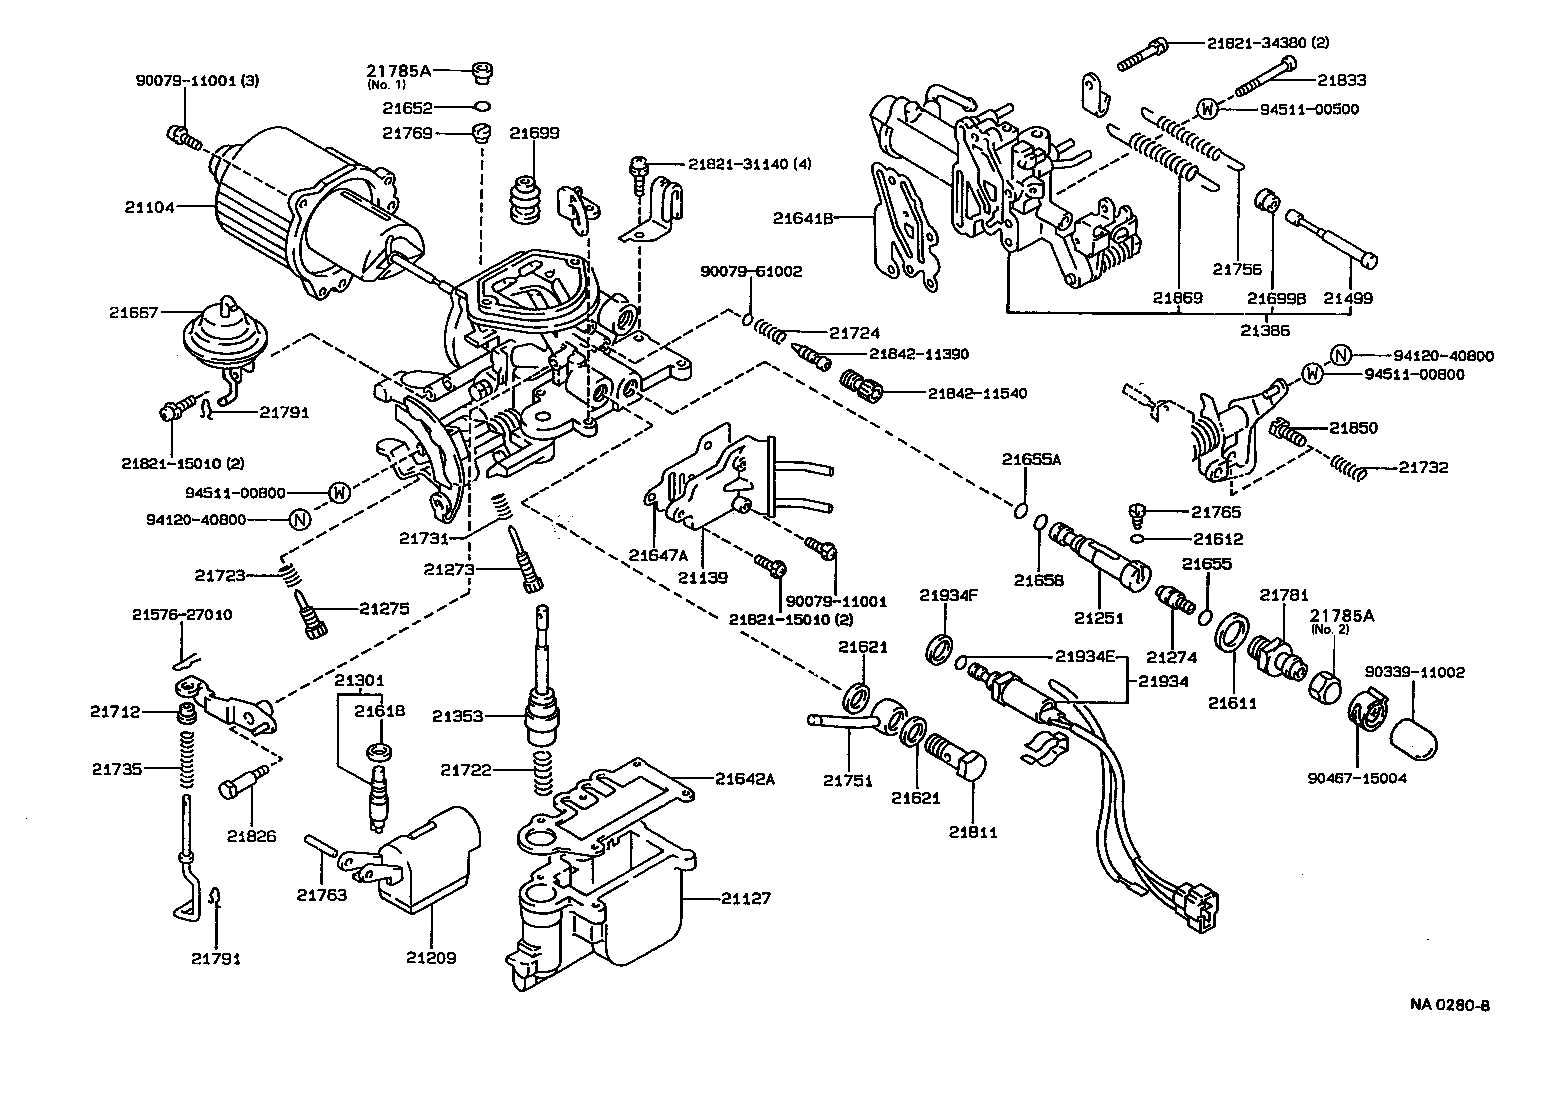 Bestseller: 1988 Toyota Corolla Engine Diagram